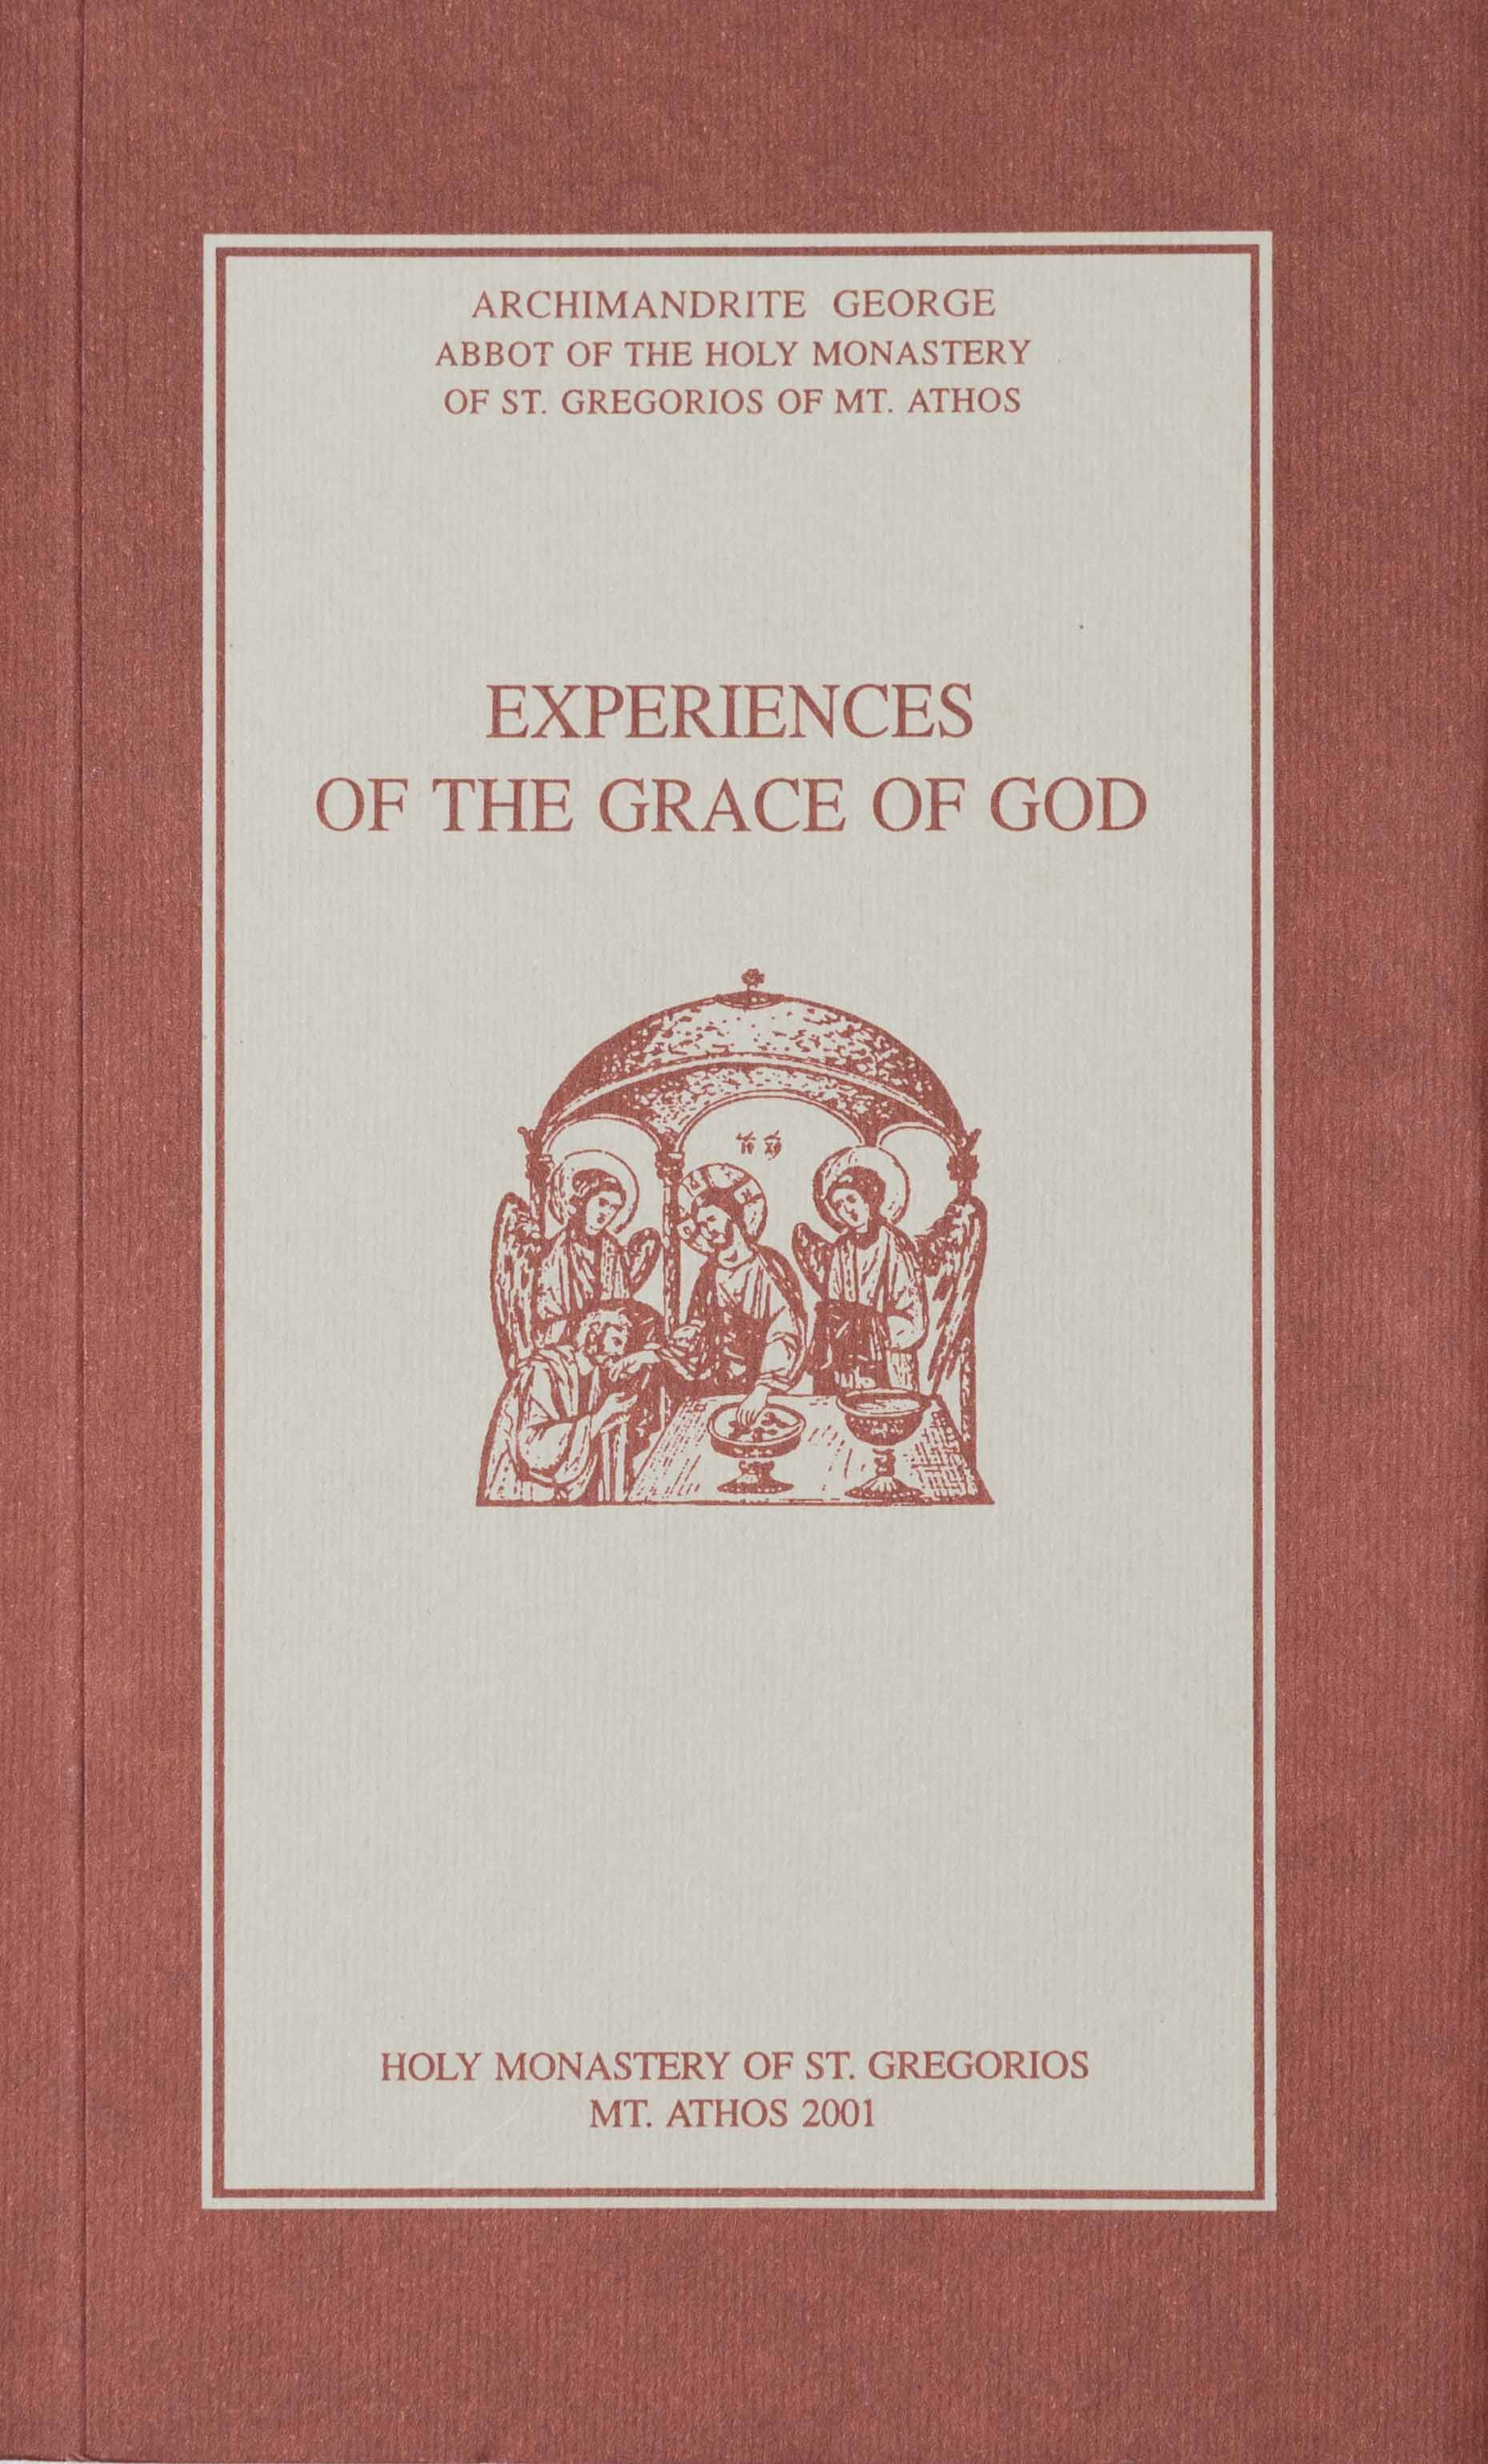 Experiences of the Grace of God                    OUT OF STOCK